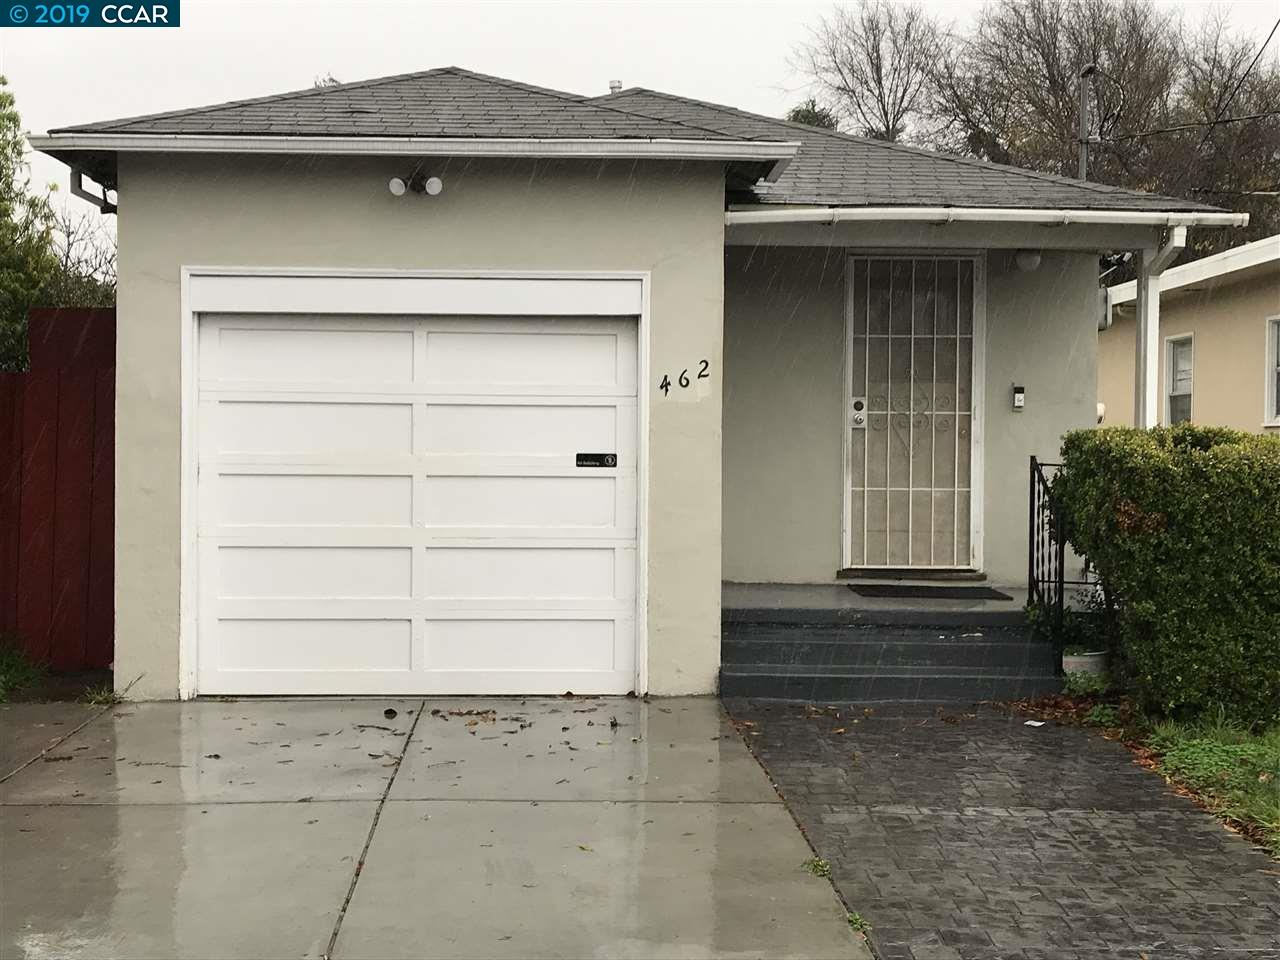 462 30TH STREEET, RICHMOND, CA 94804